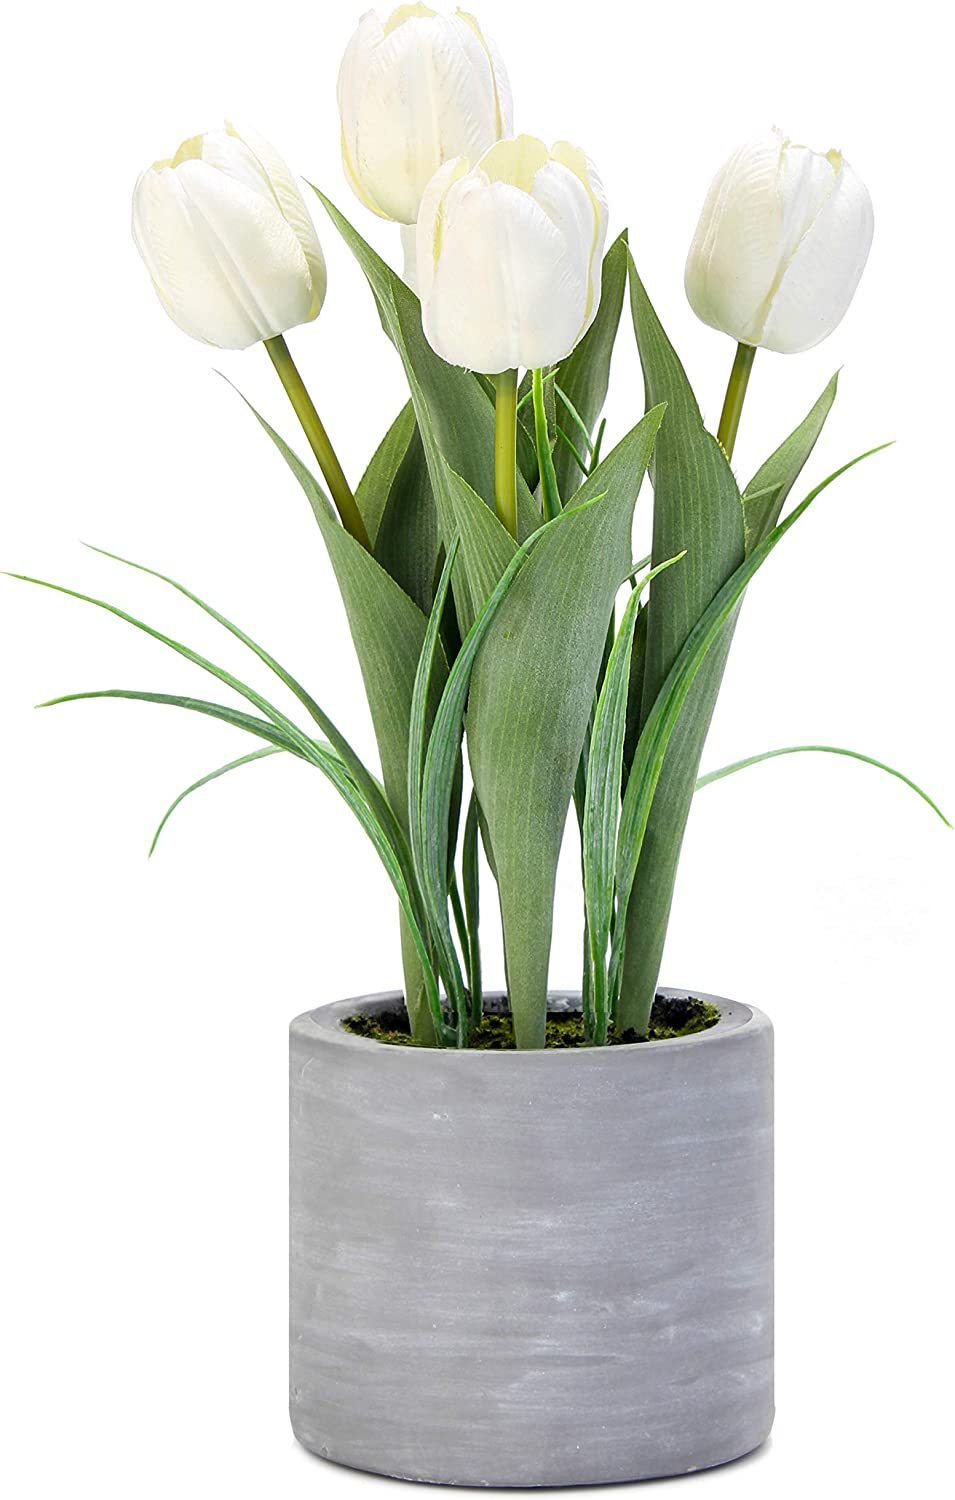 Jusdreen Artificial Potted Tulips Flowers with Cement Vase Vivid Tulip Flowers Arrangement for Home Office Décor House Decorations(5 White Tulips)